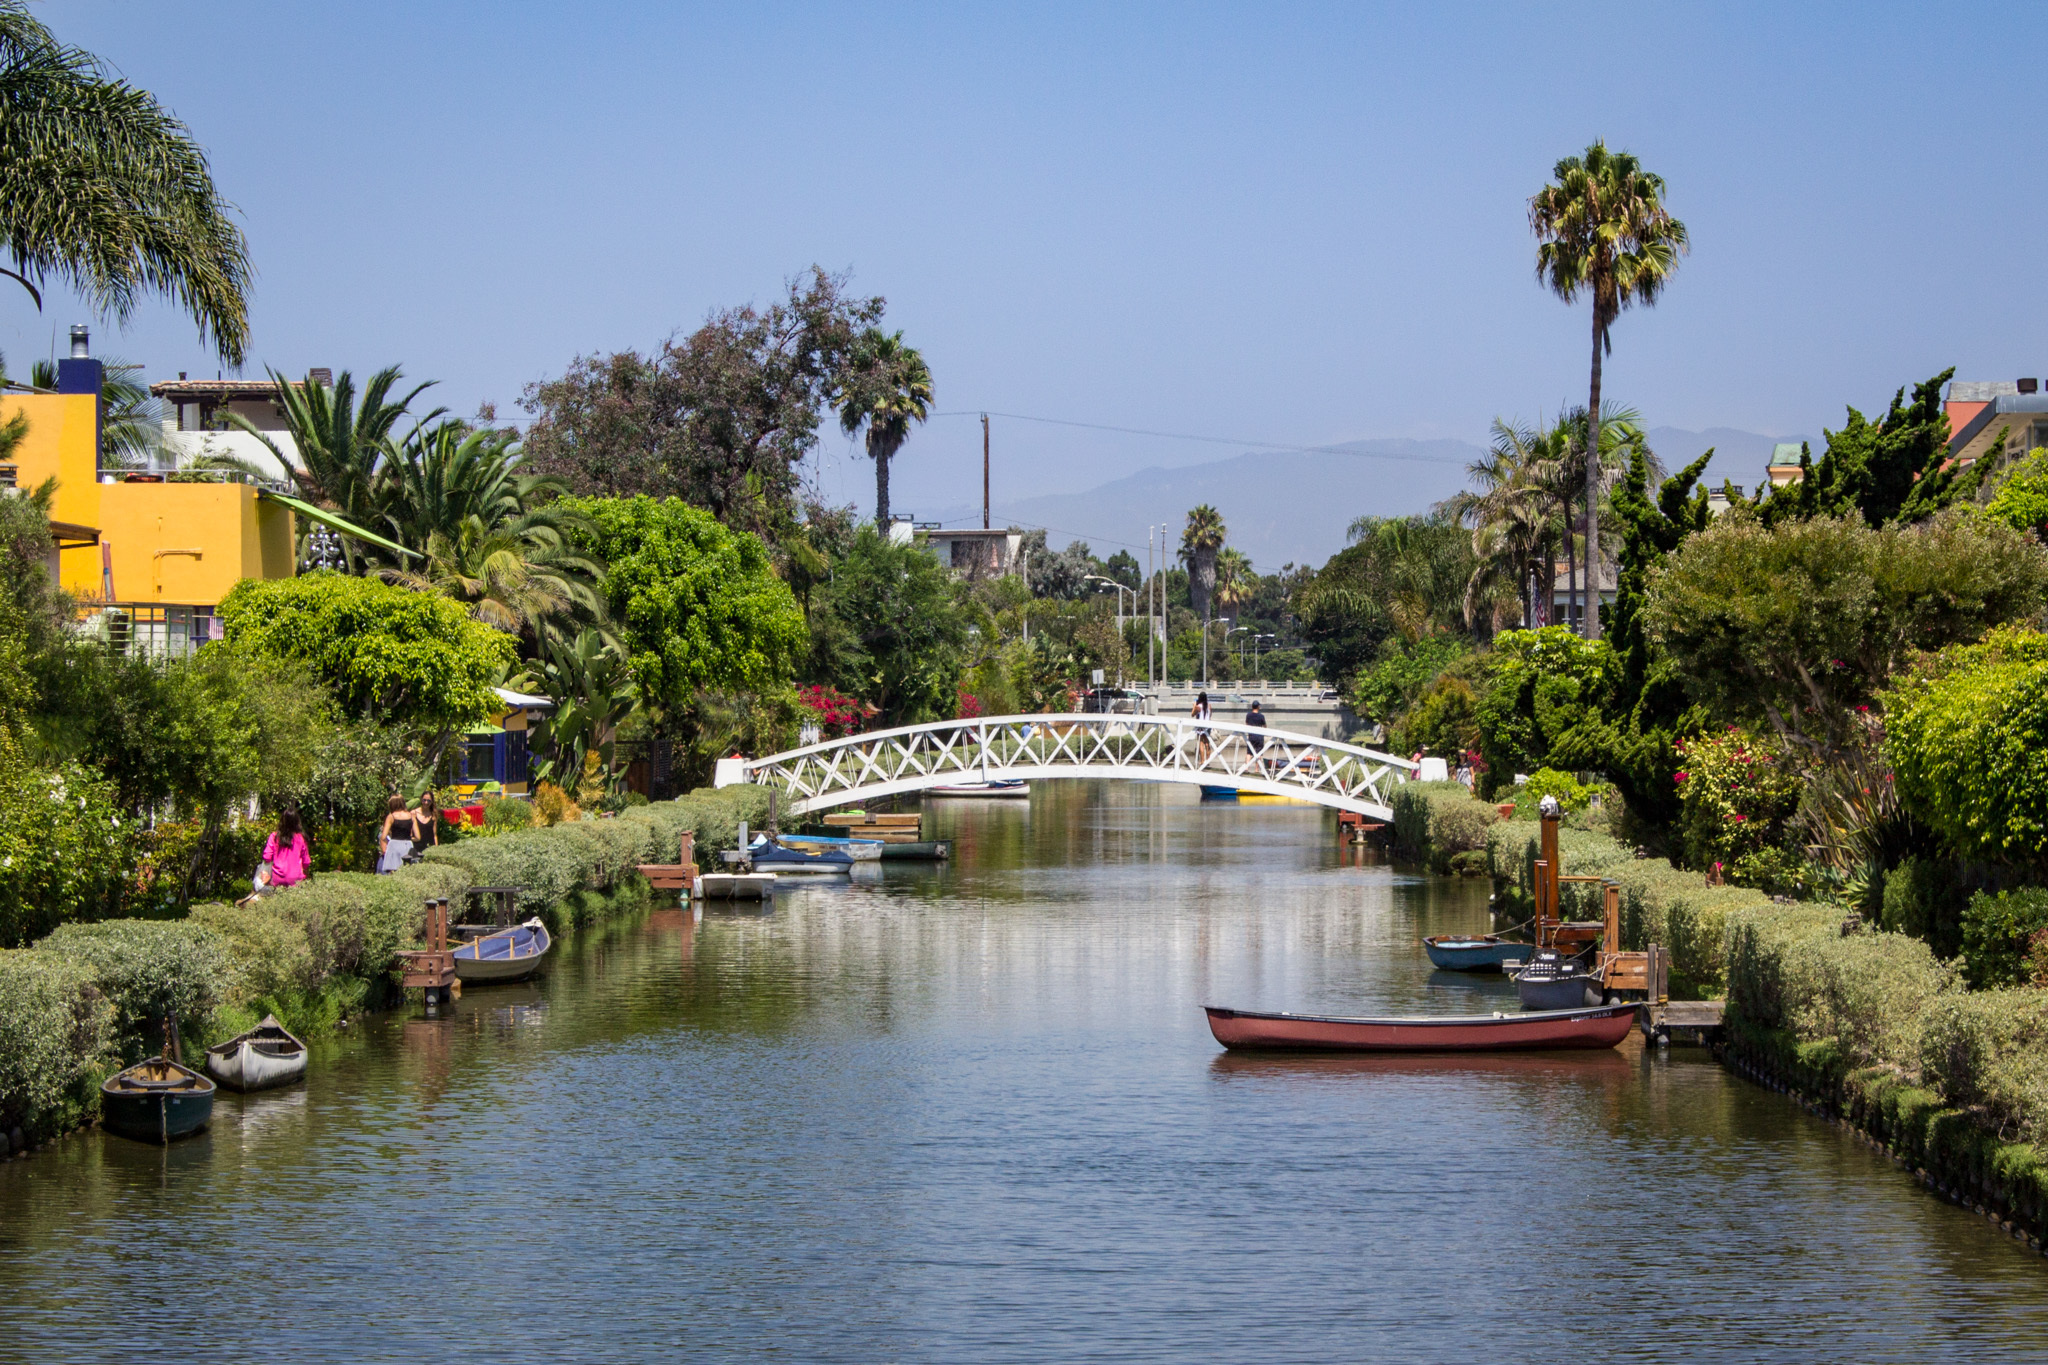 Venice Canals | Things to do in Venice, Los Angeles